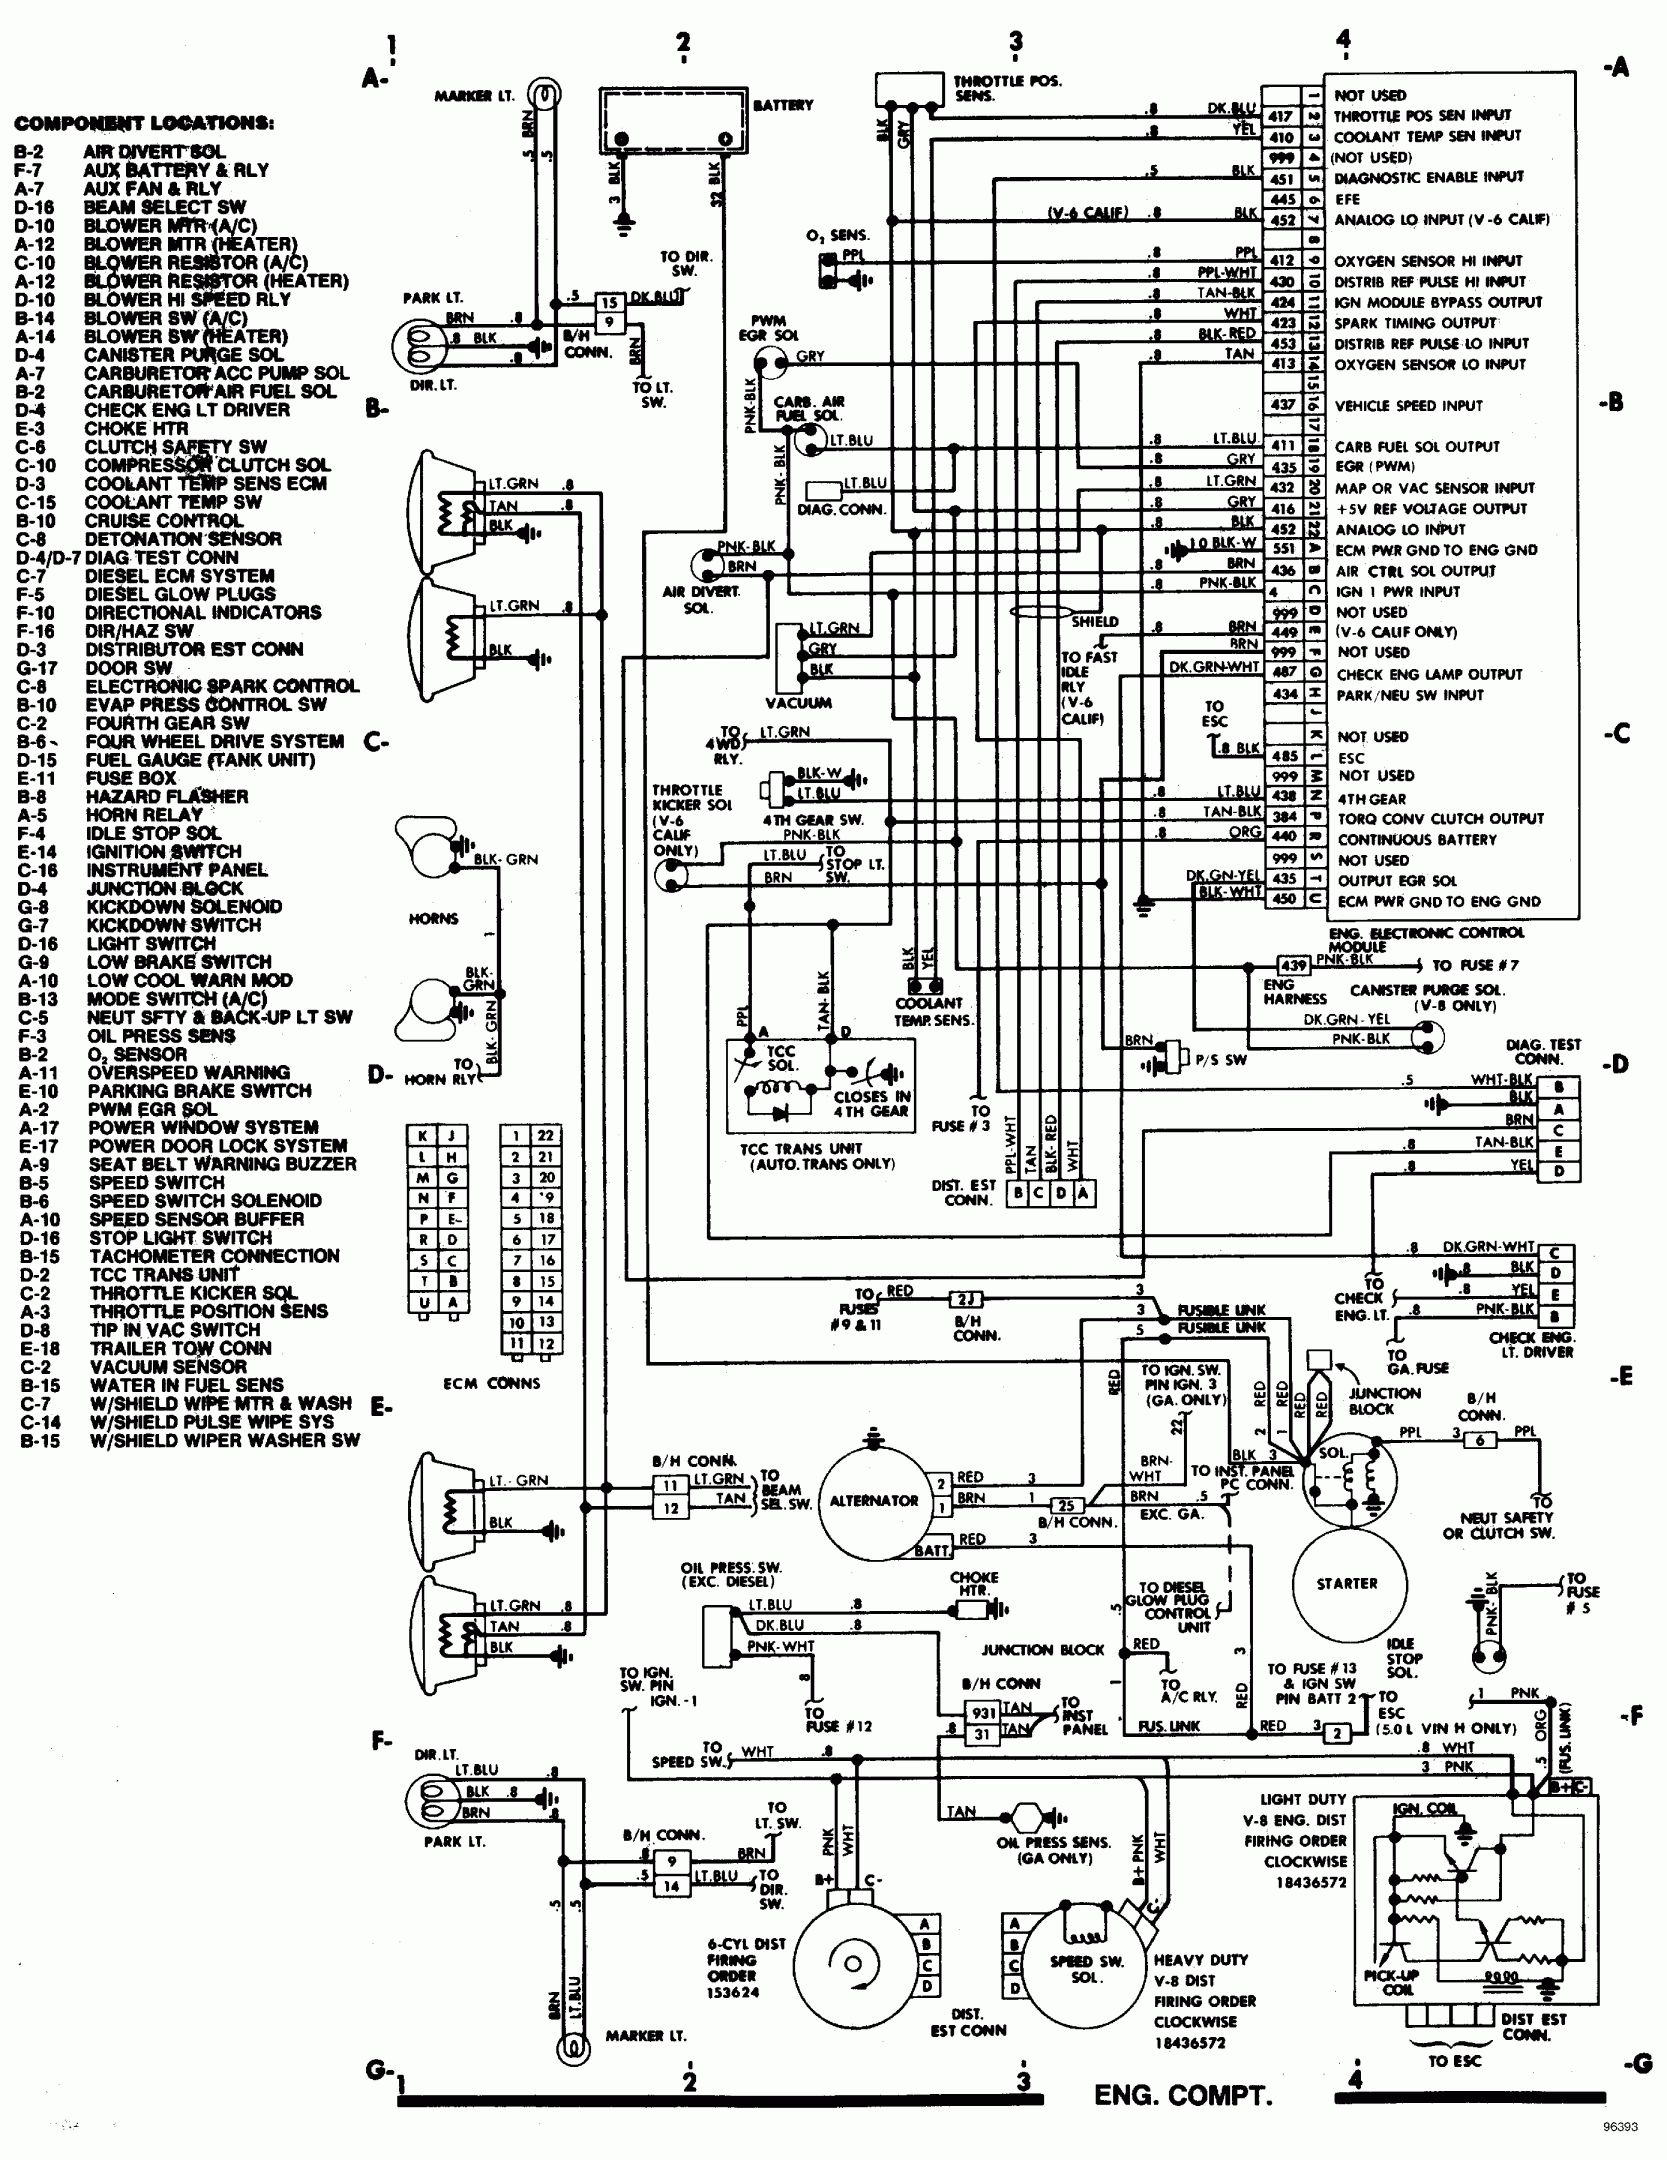 12 1985 Chevrolet Truck Wiring Diagram Electrical Wiring Diagram Chevy Trucks 1984 Chevy Truck